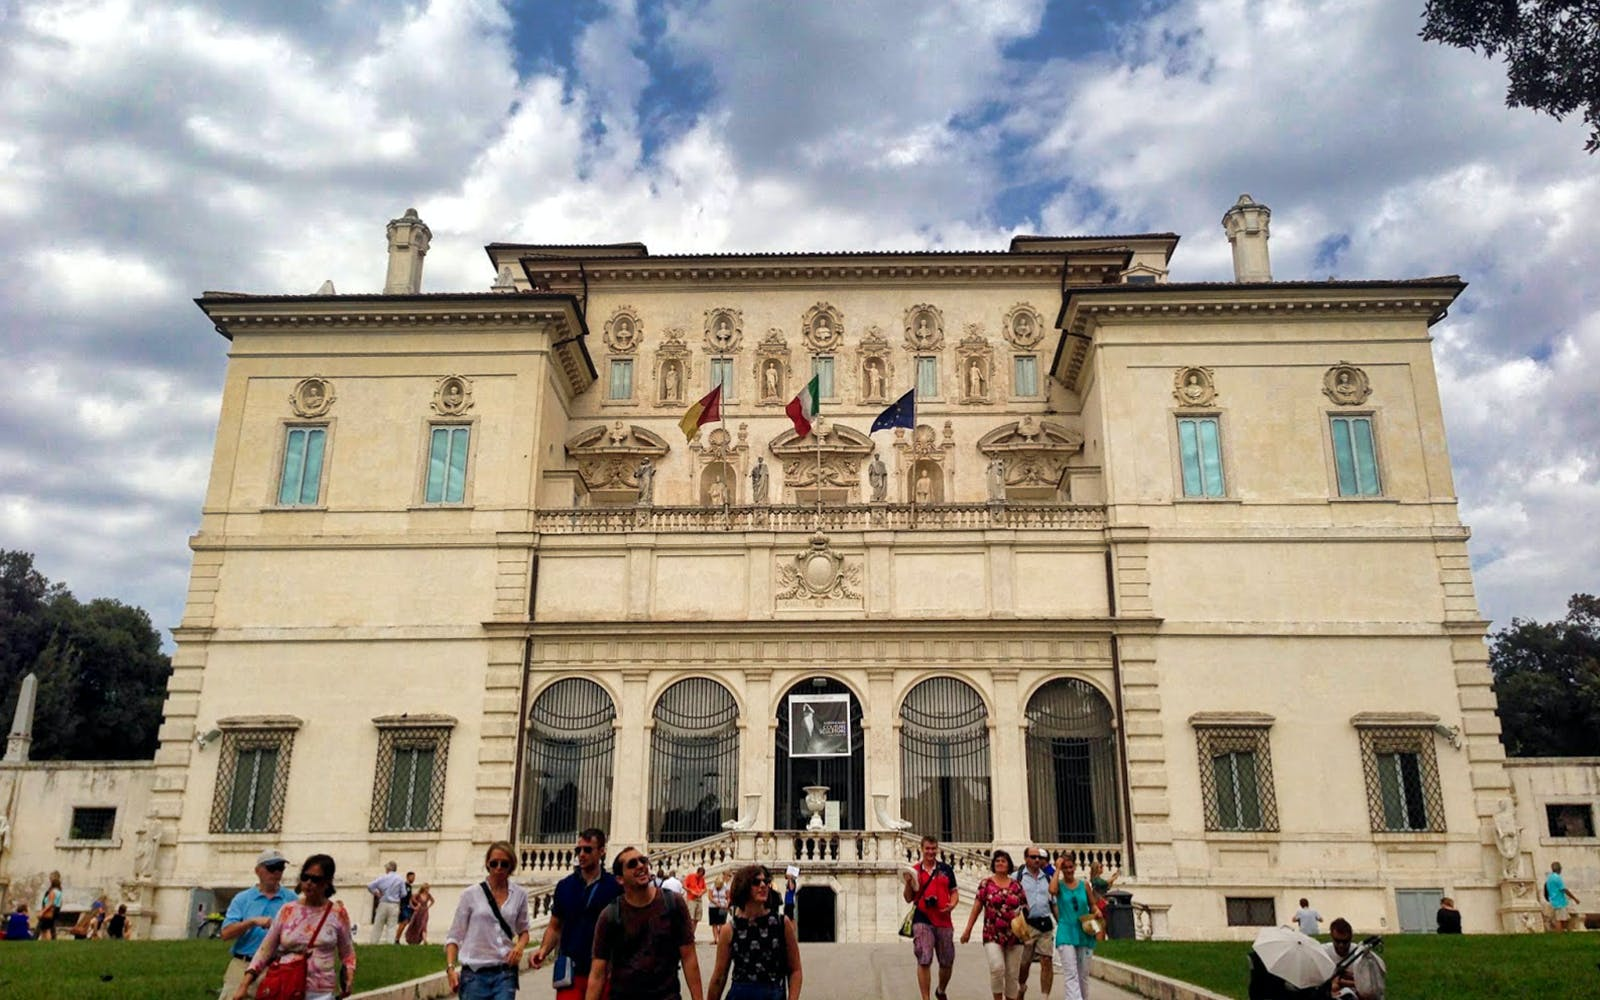 villa borghese gallery and gardens skip the line guided tour-1